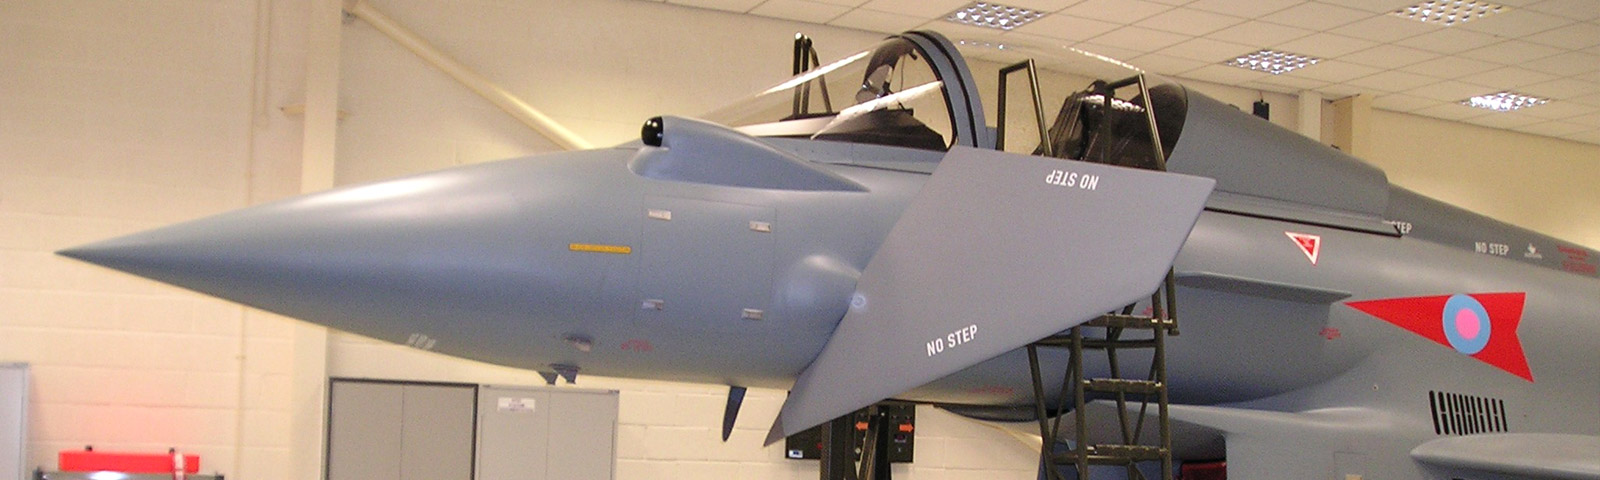 <h1>Specialist training simulators for defence</h1><a href='/defence/simulators/'>Find out more</a>